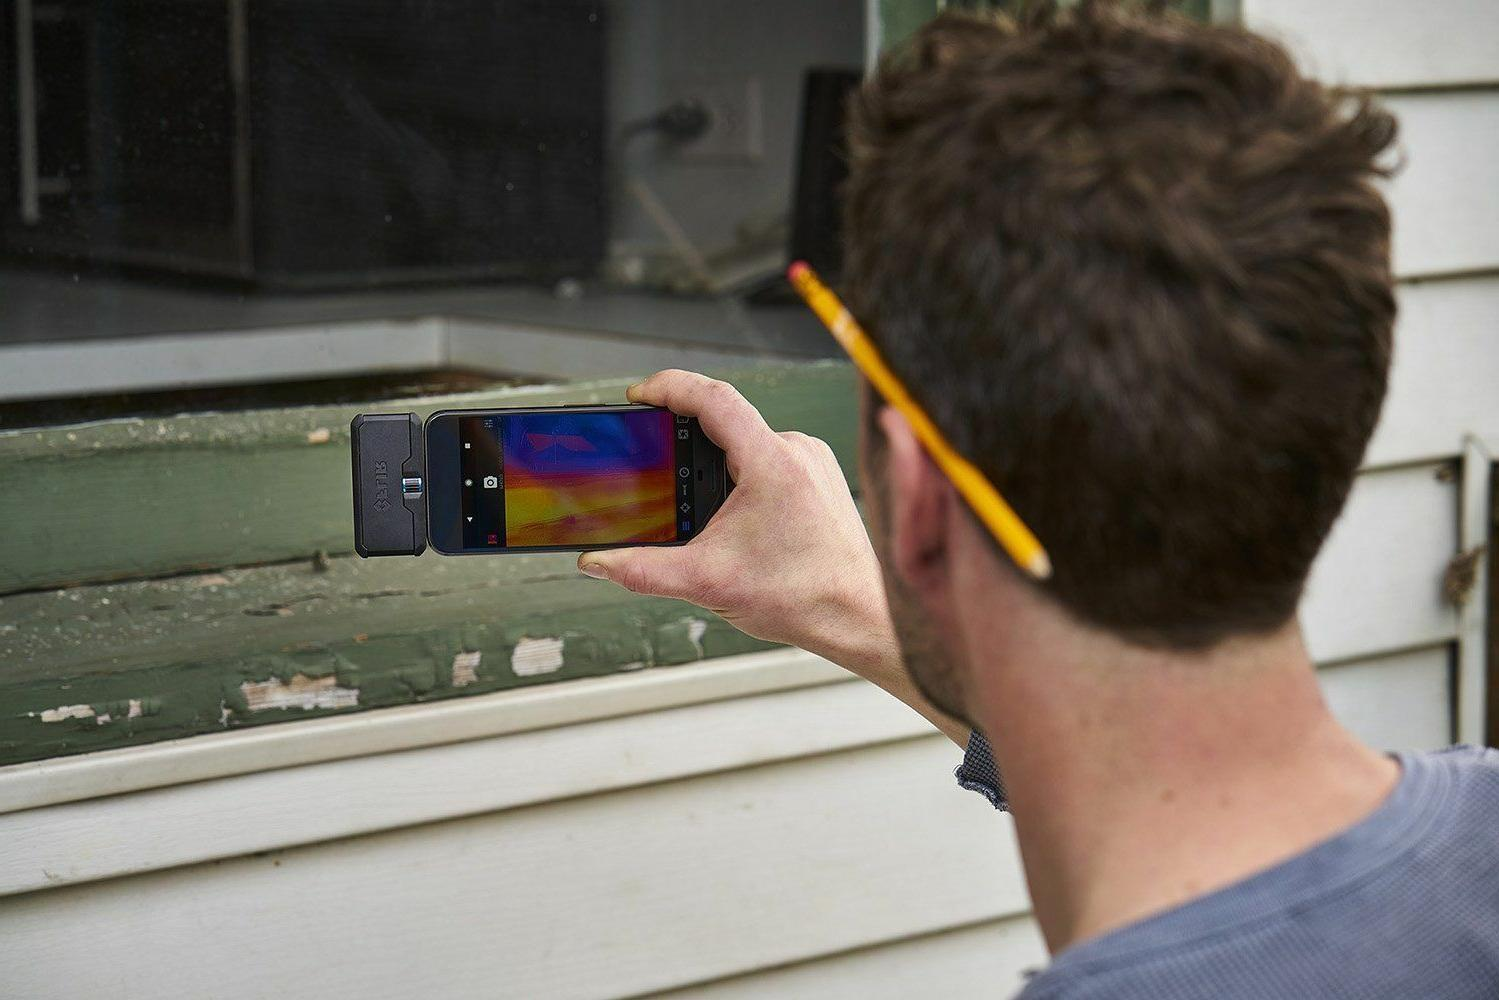 Flir Thermal Camera Attachment for iOS